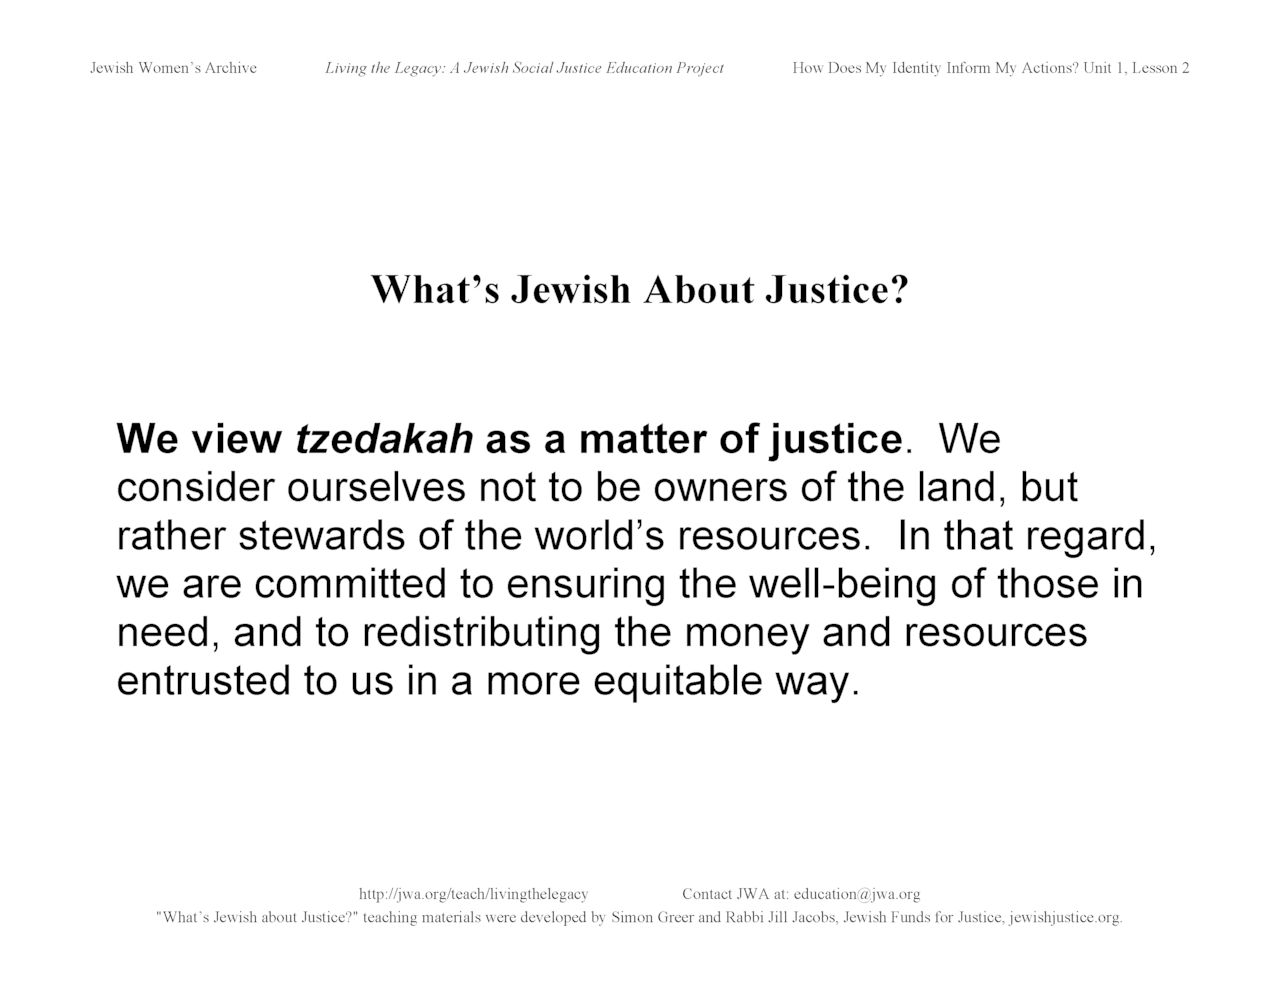 """What's Jewish About Justice?"" signs: We view tzedakah as a matter of justice"